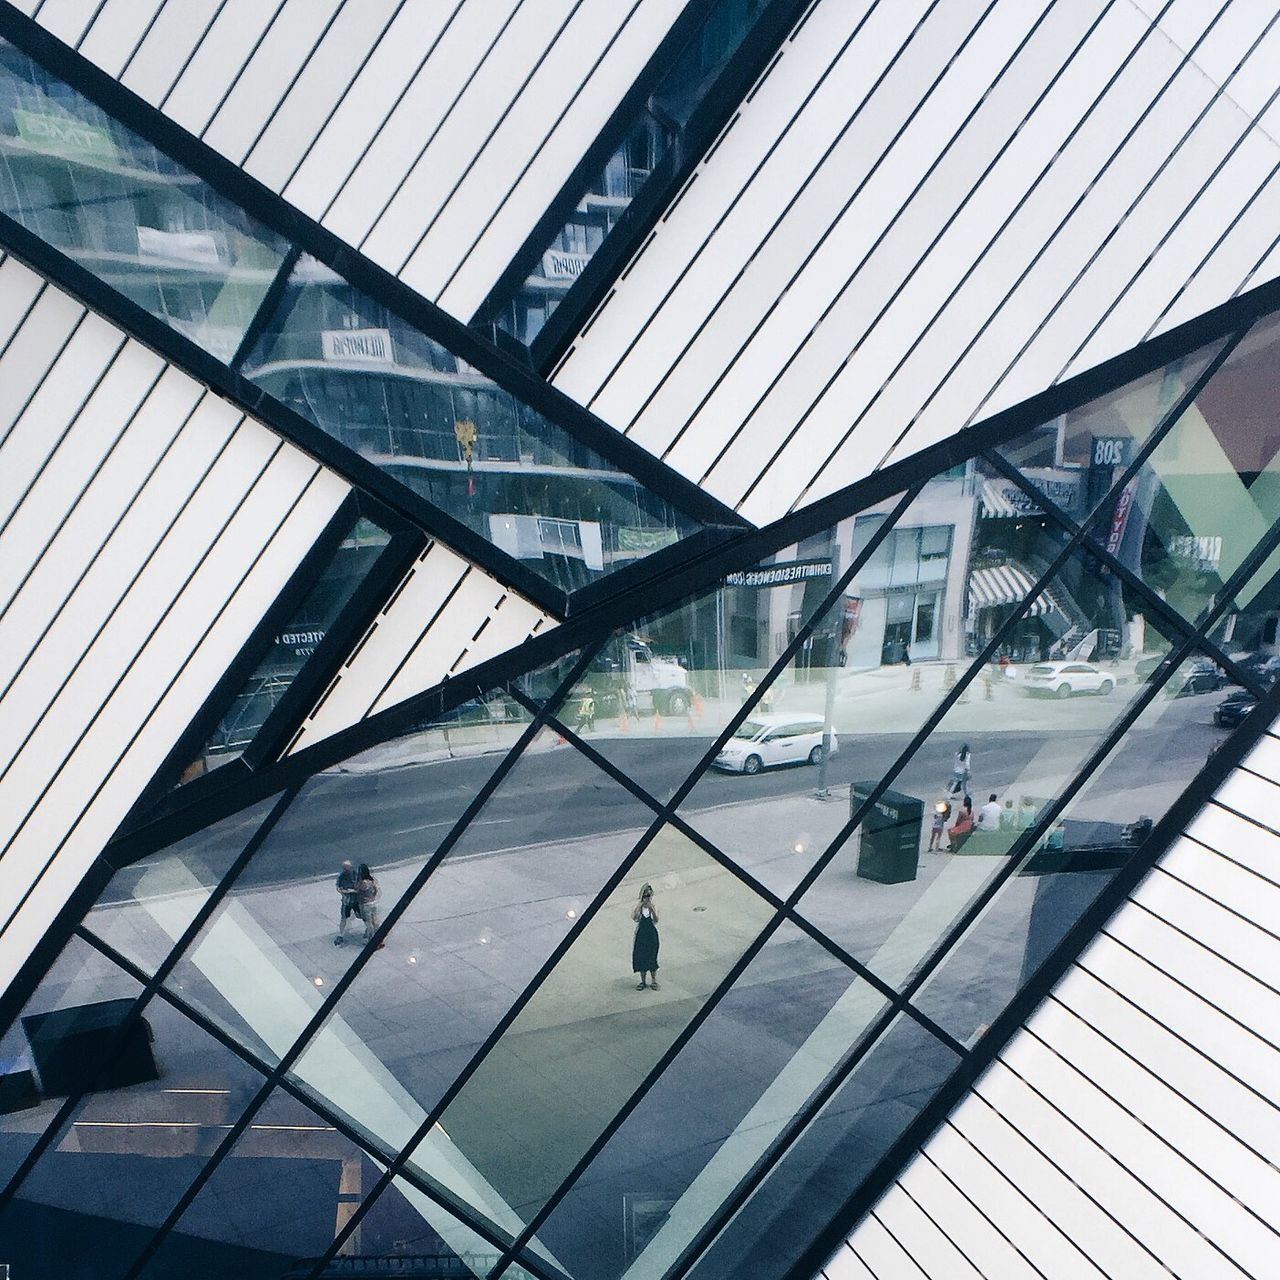 Royal Ontario Museum From My Point Of View Toronto Libeskind Architecture Mirrorselfie